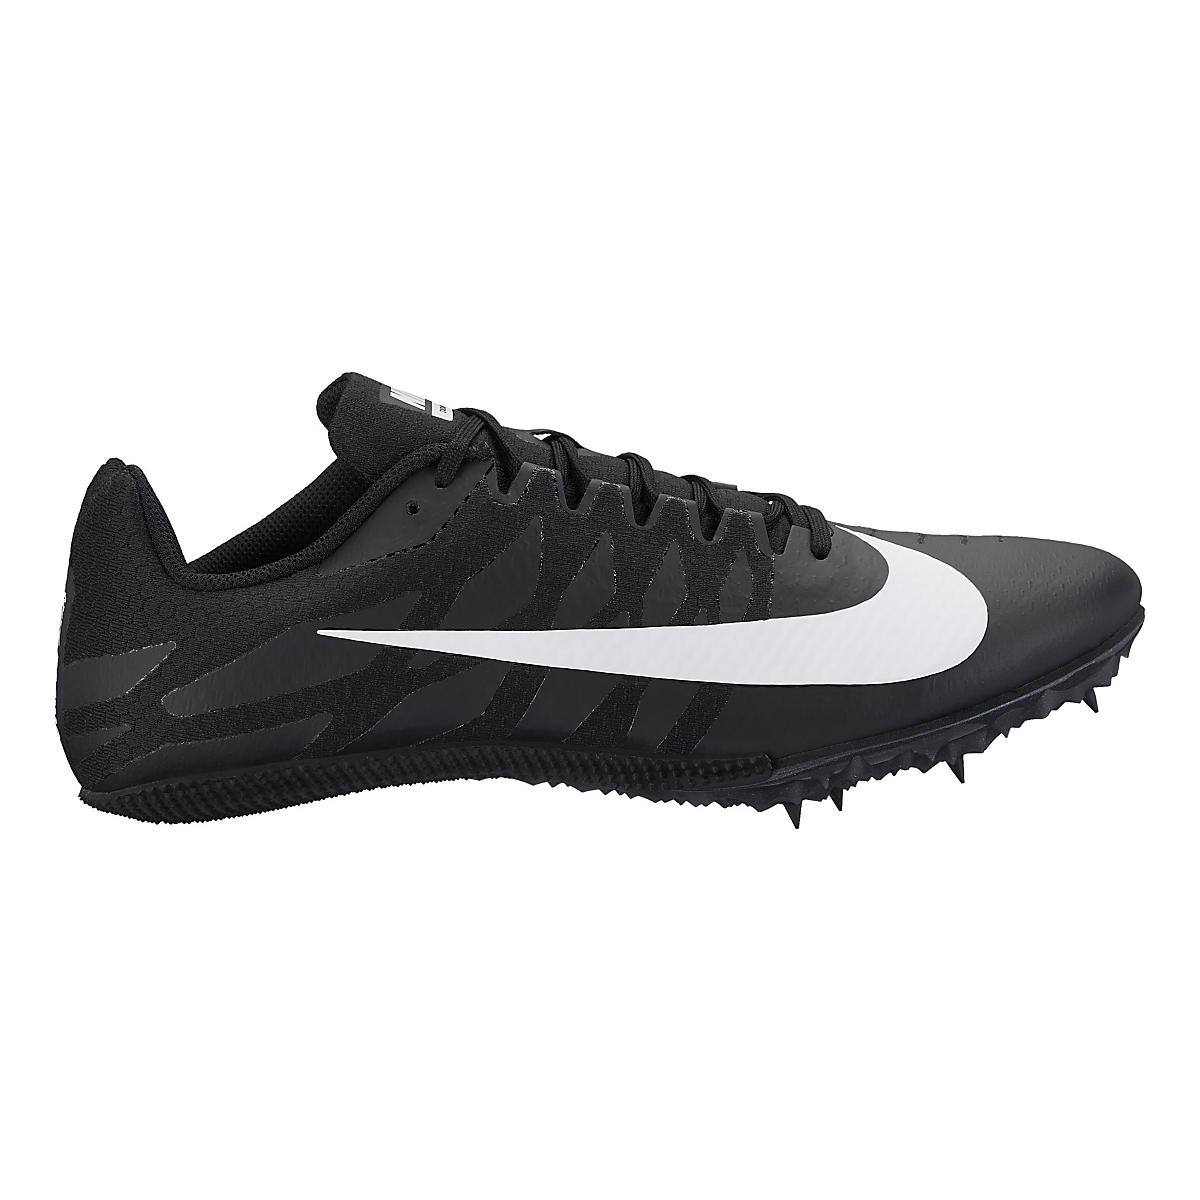 e7befc5eba5 Mens Nike Zoom Rival S 9 Track and Field Shoe at Road Runner Sports